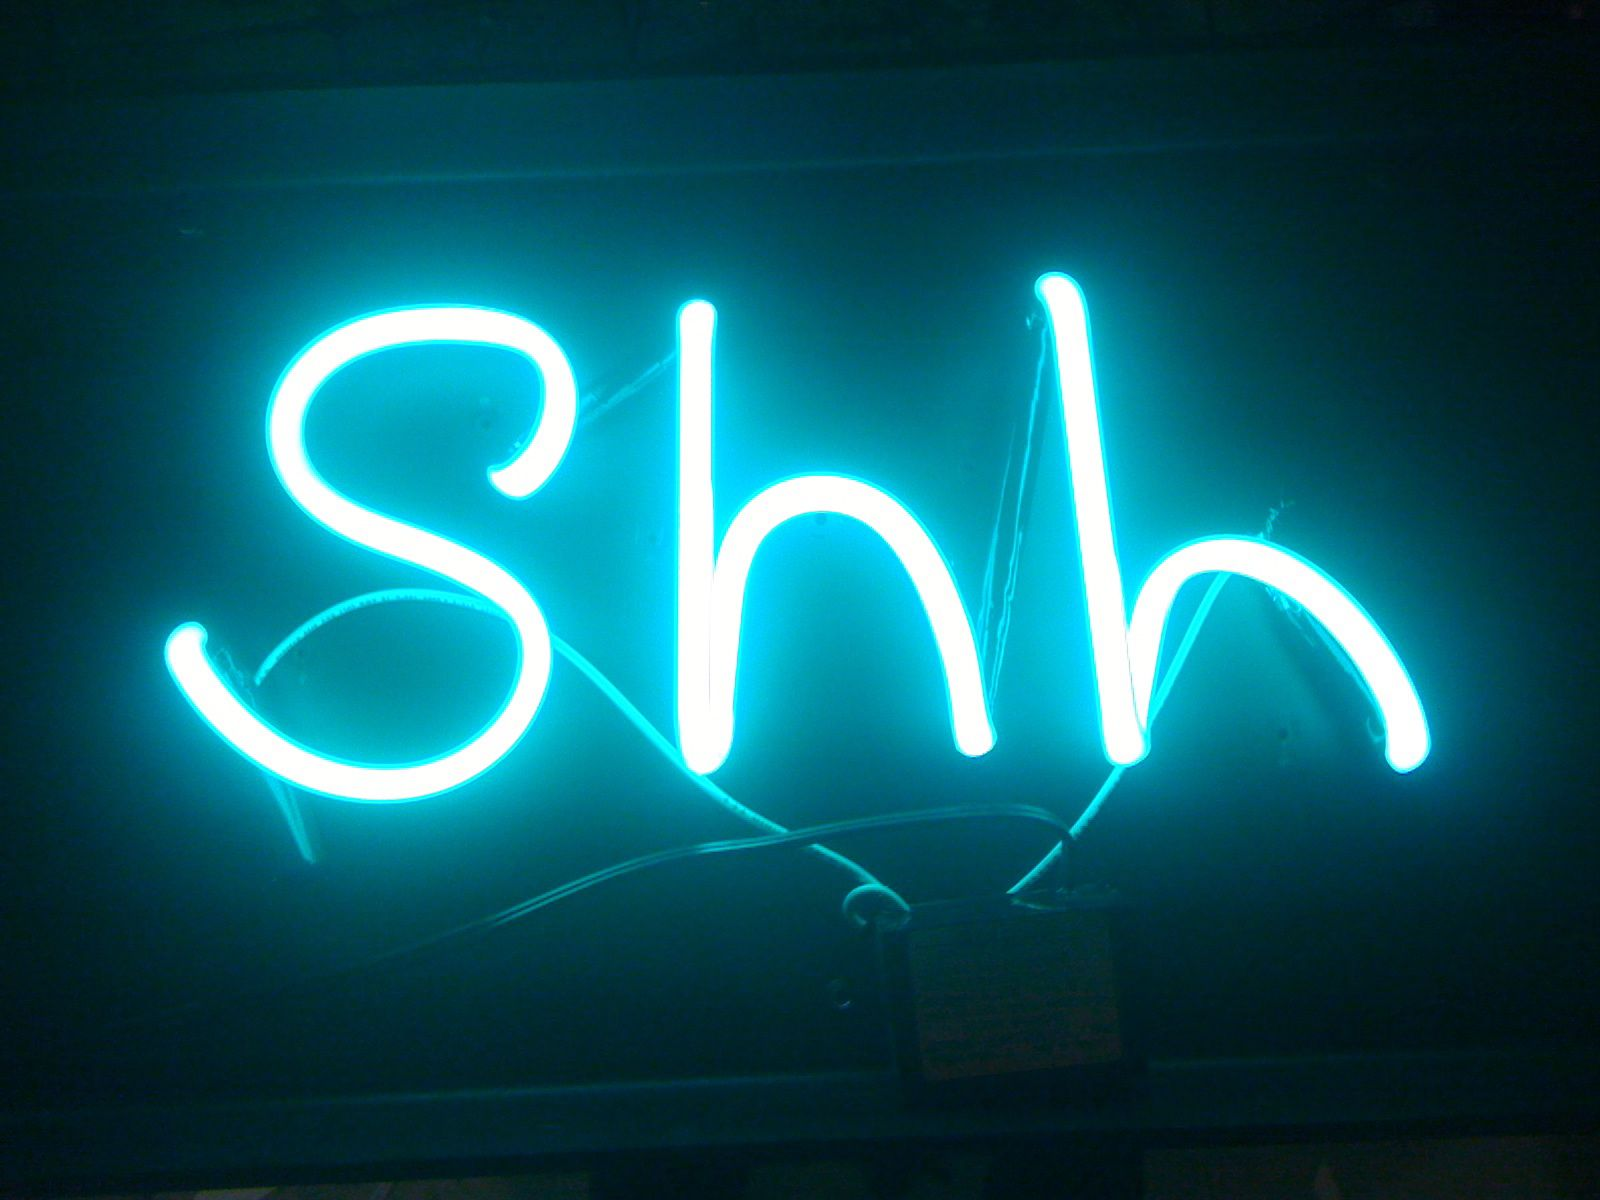 Custom Neon Words And Signs Studioglow Custom Neon Art And Signs Neon Quotes Blue Neon Lights Neon Signs